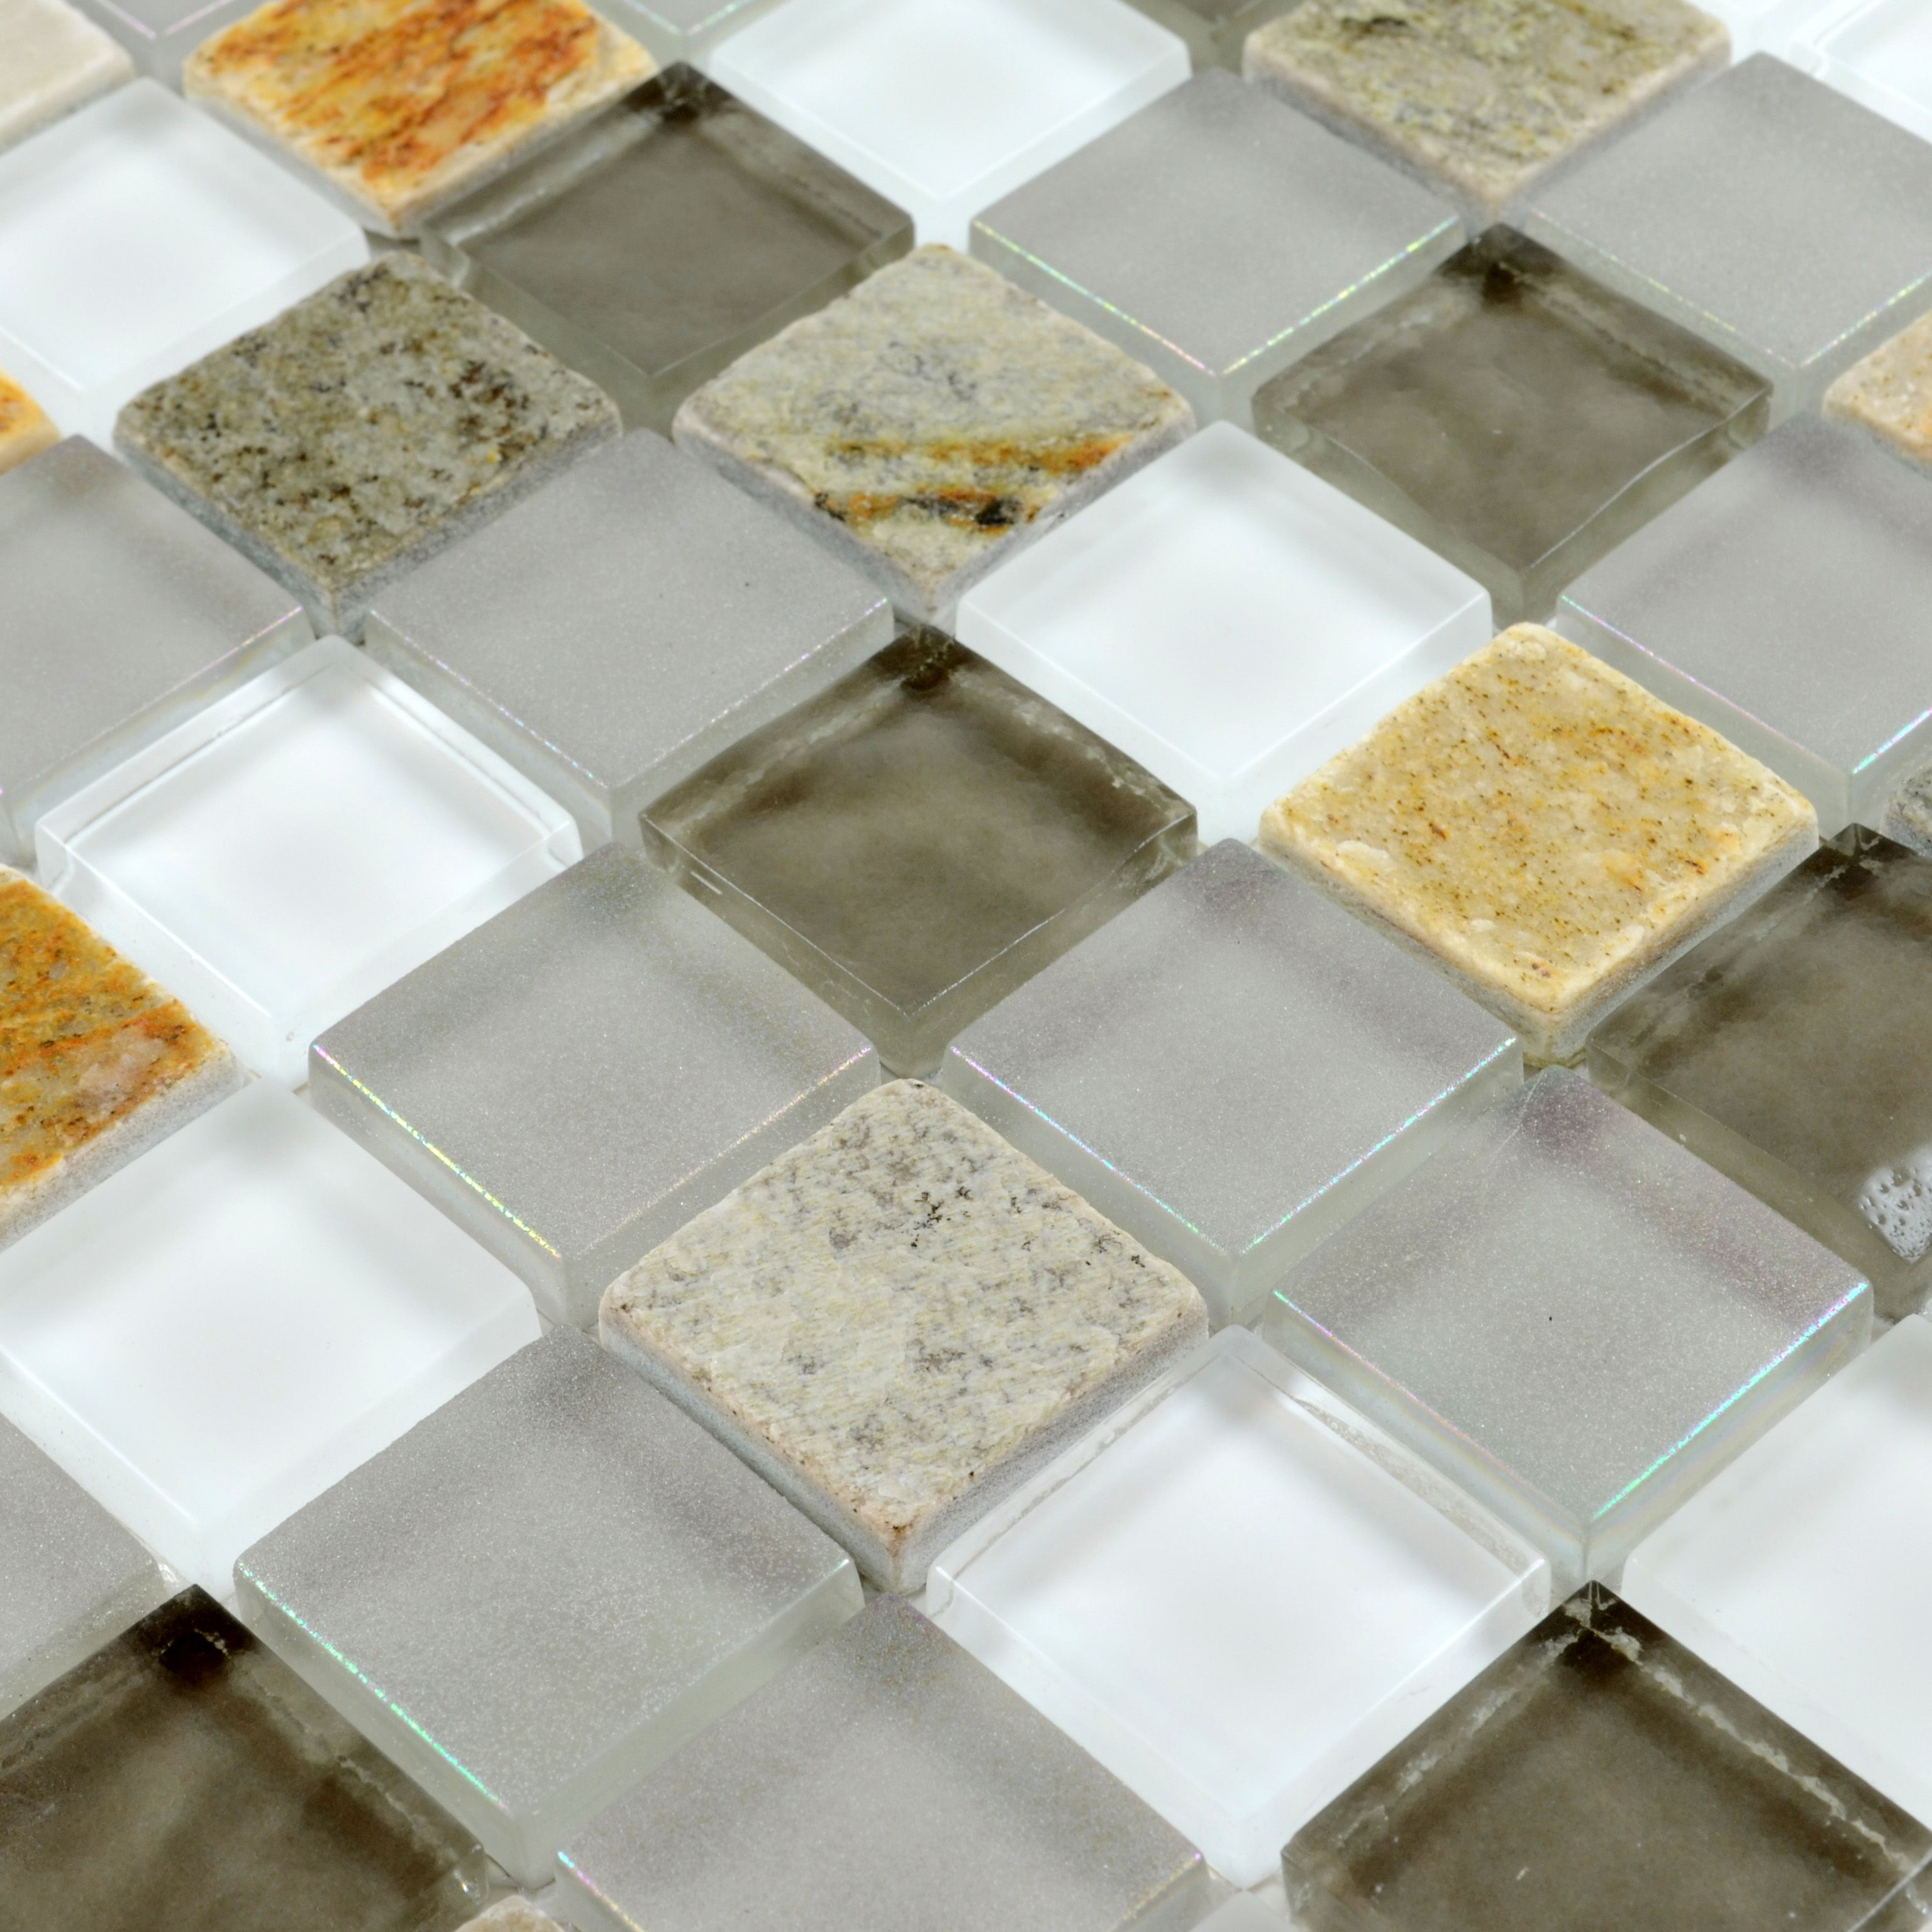 Stone glass mosaic tile ice crack glass with marble backsplash stone glass mosaic tile ice crack glass with marble backsplash wall stickers floor tiles sg120 dailygadgetfo Image collections